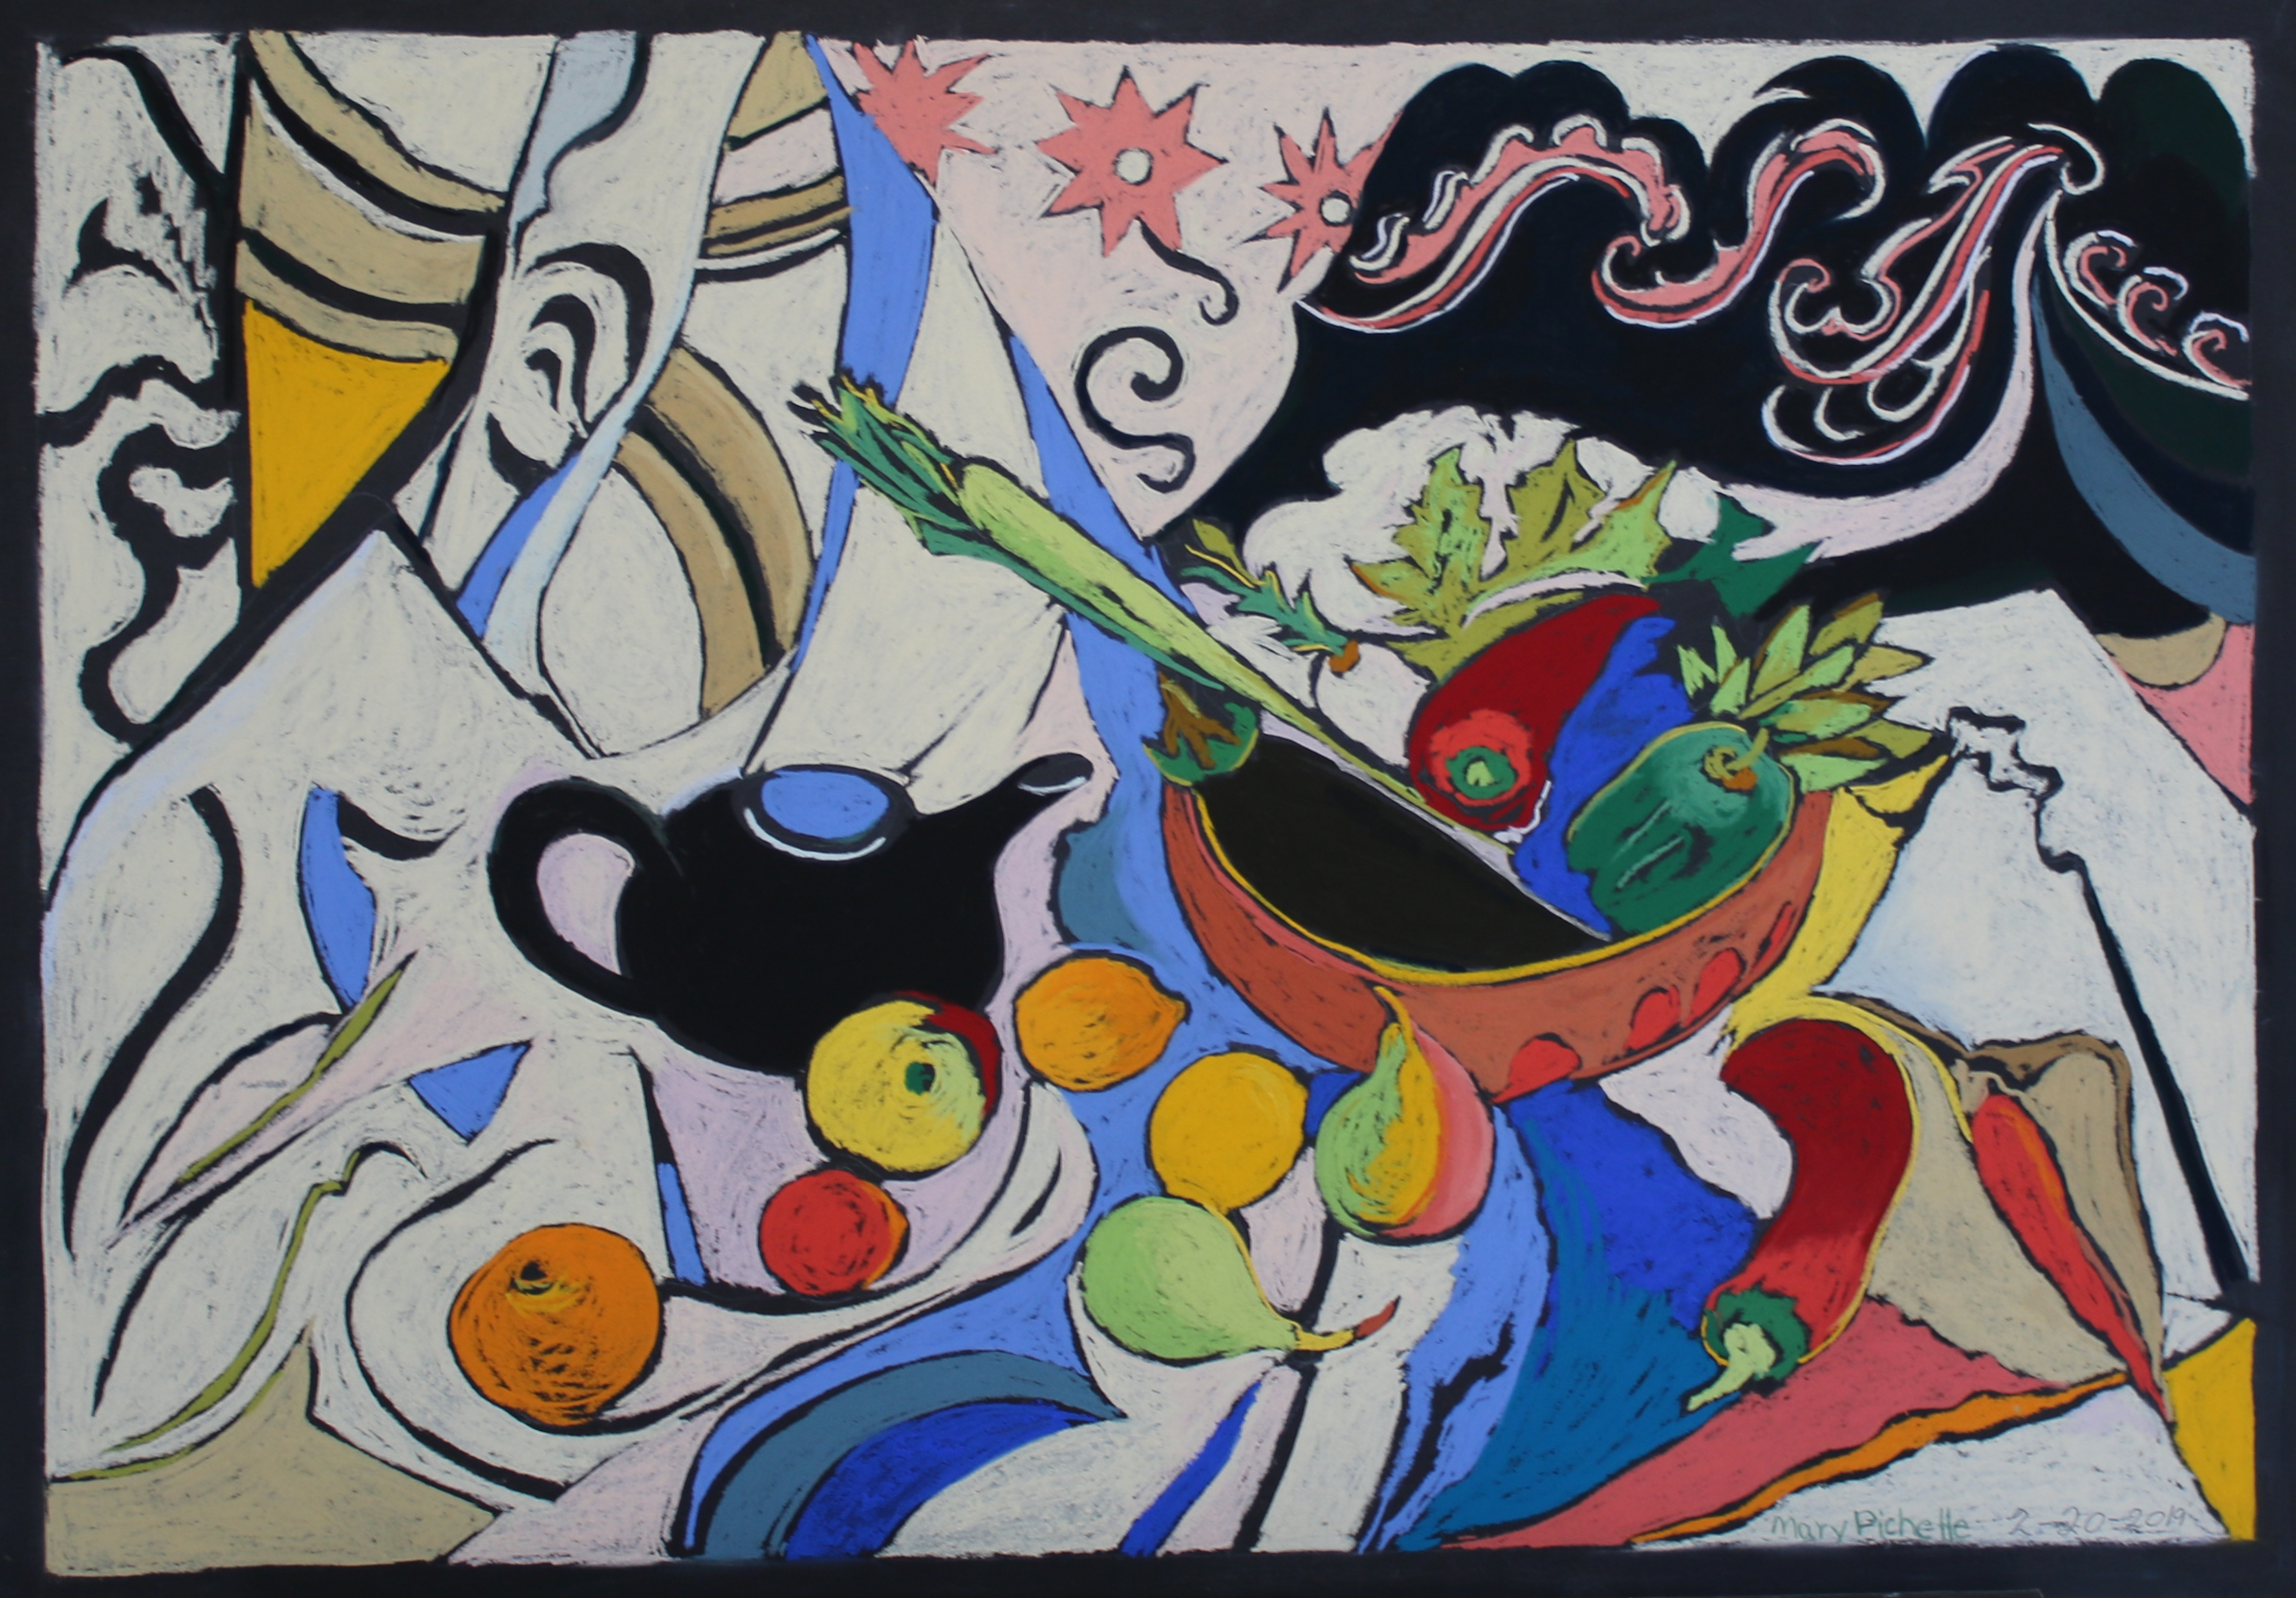 Curves, Color and Teapot 21 Feb 2019